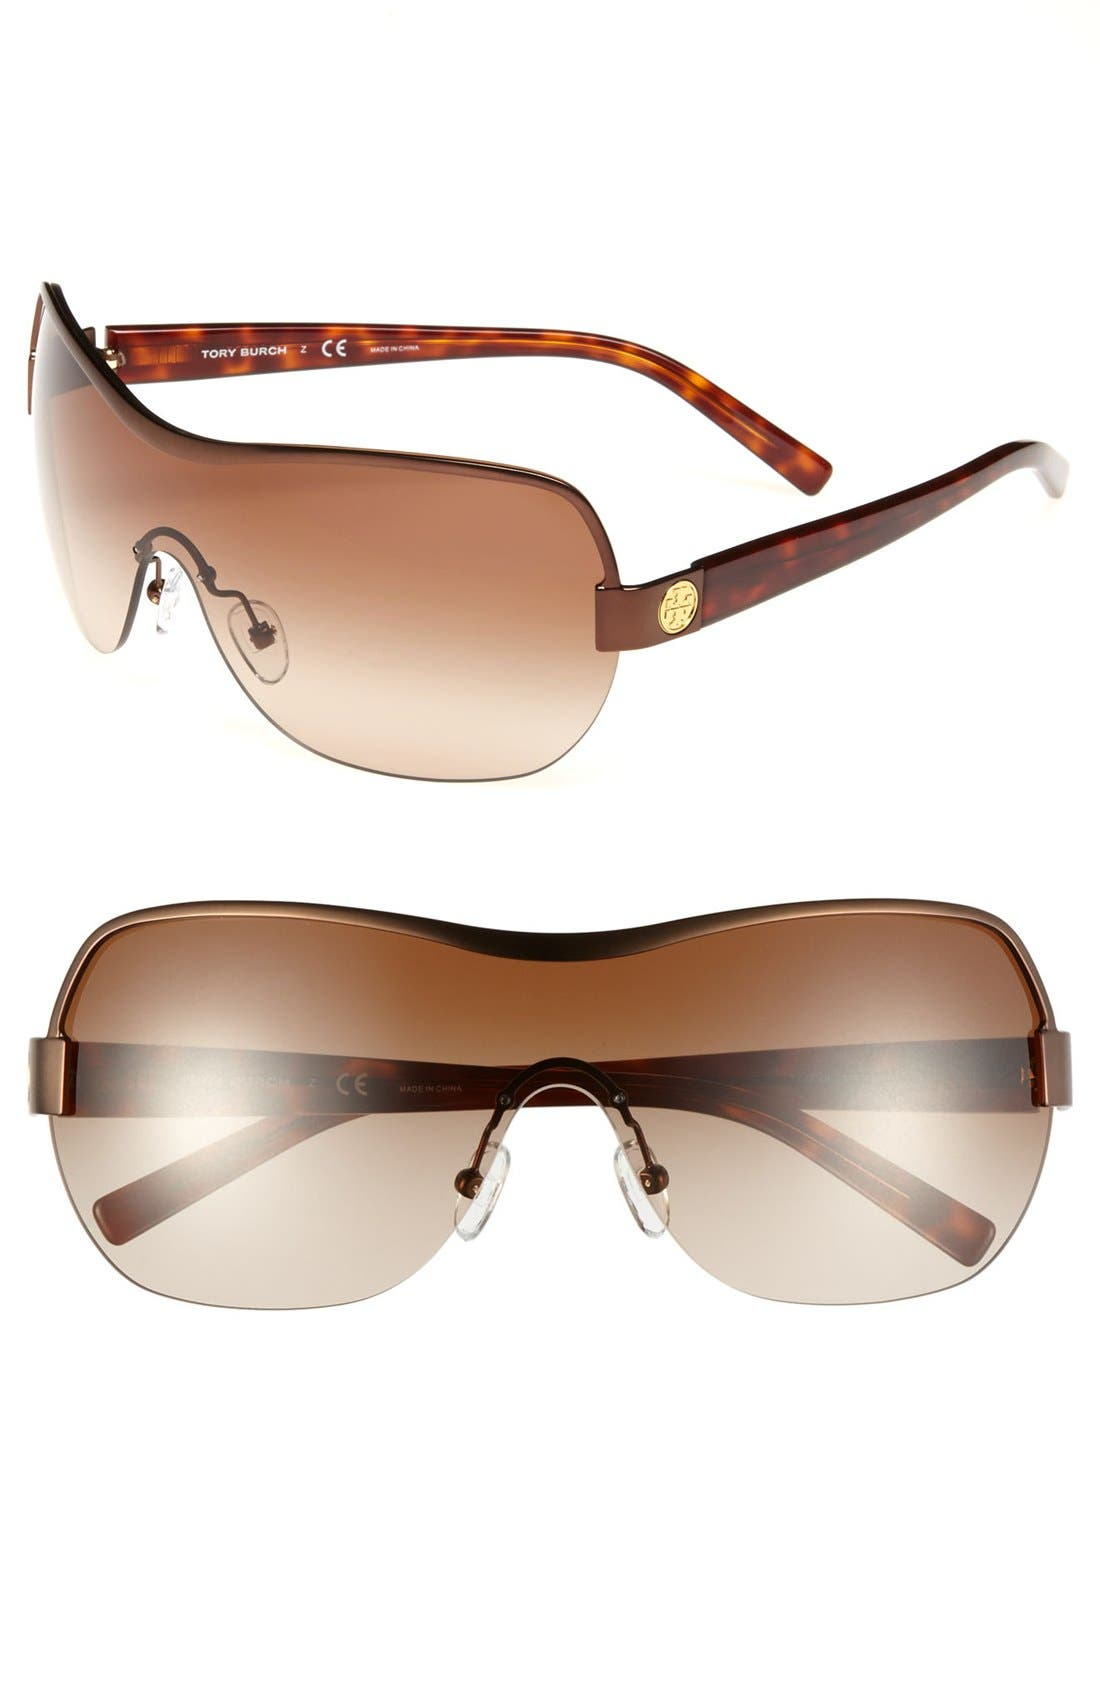 Main Image - Tory Burch 132mm Semi Rimless Shield Sunglasses